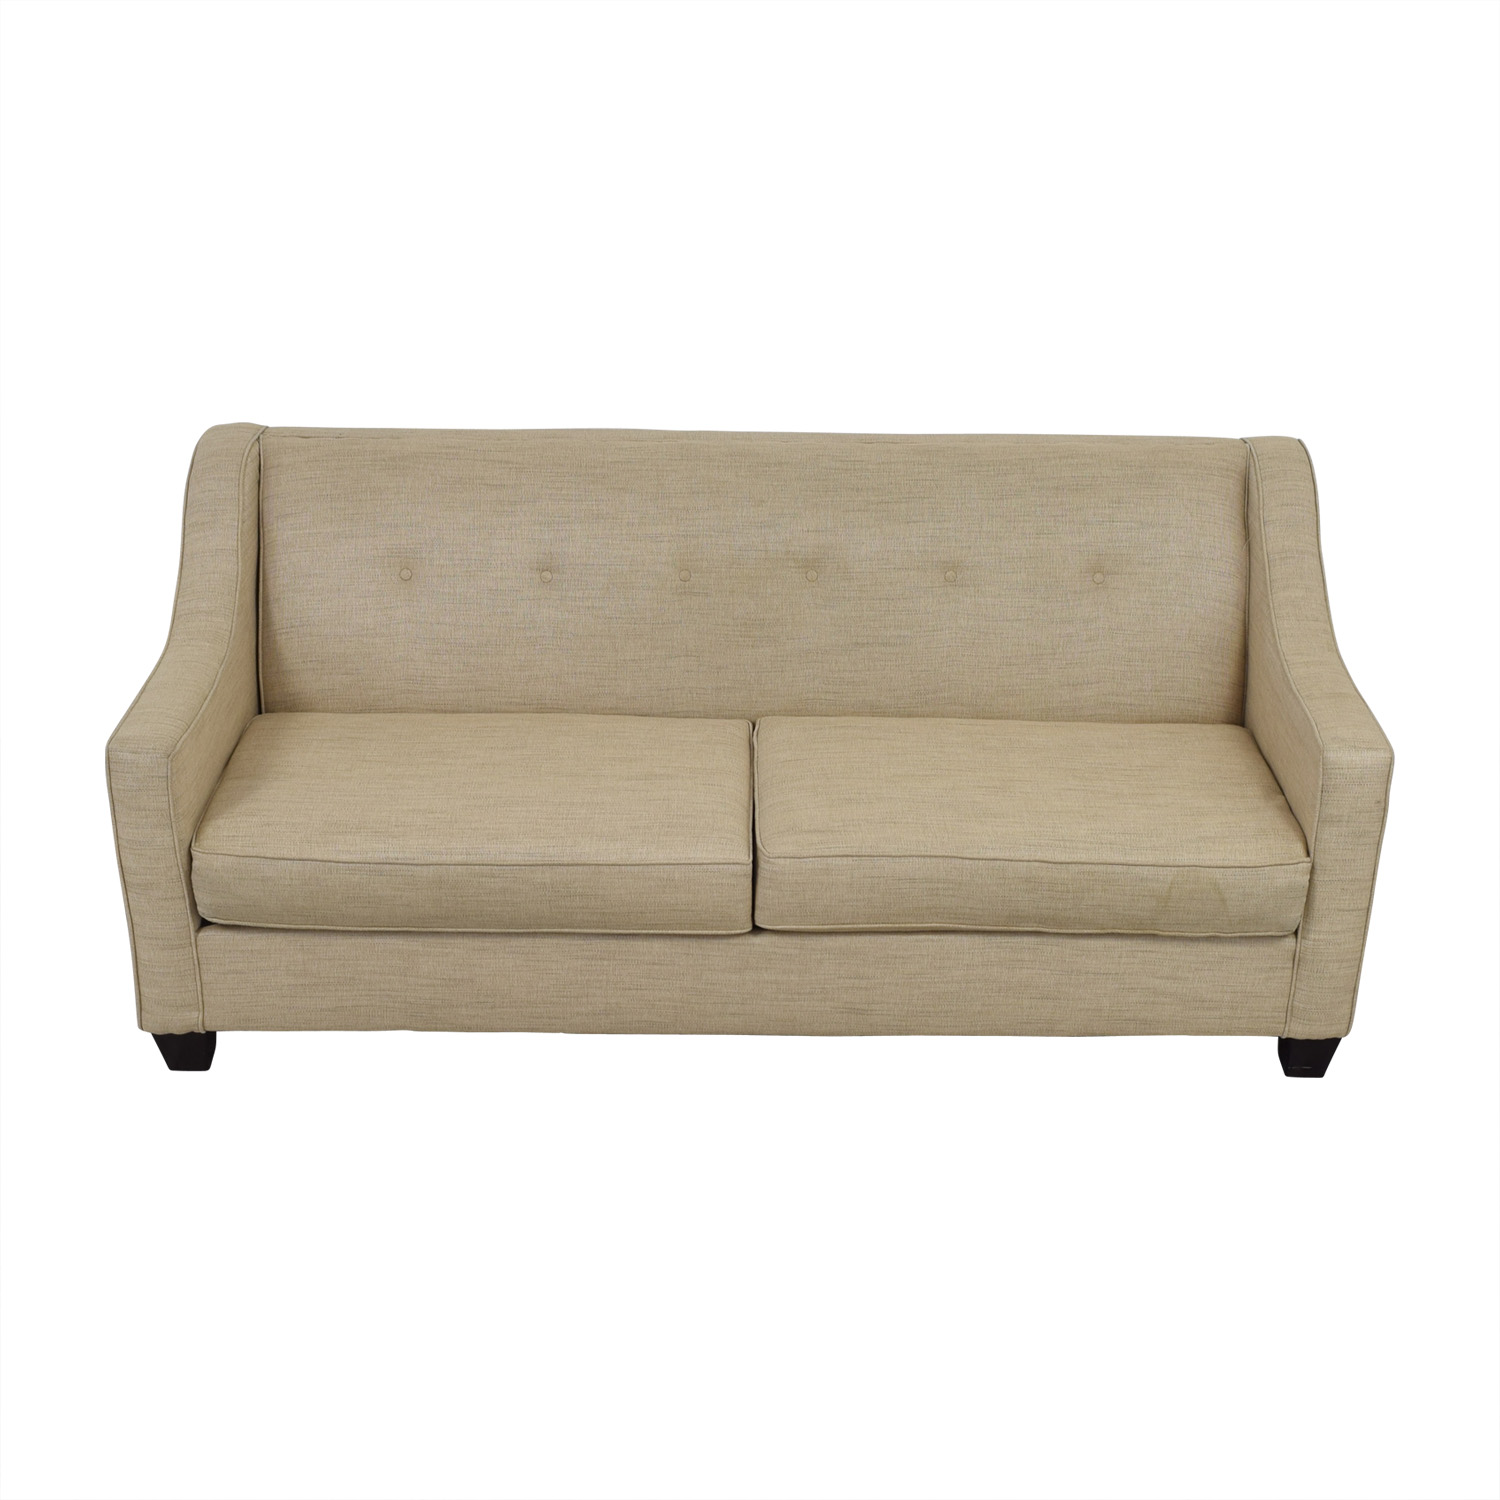 75 off bob39s furniture bob39s furniture beige tufted for Bobs used furniture